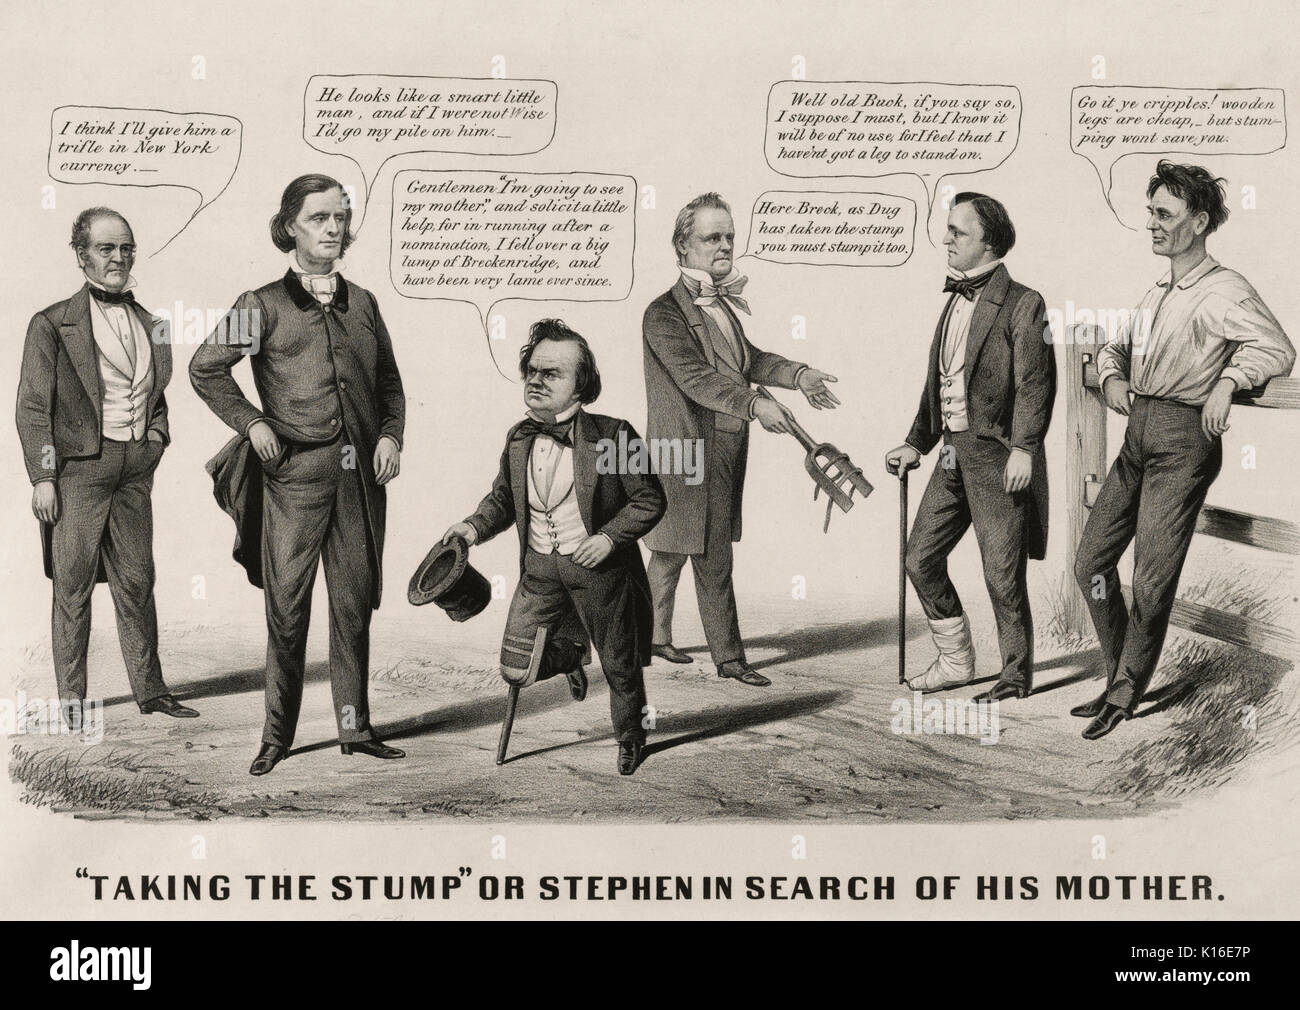 'Taking the stump' or Stephen in search of his mother . A satire on Douglas's July 1860 campaign tour of upstate New York and New England.  Here a double-entendre in the use of the word 'stump,' playing on its use as a colloquialism for both campaigning and a wooden leg. In the center Douglas, wearing a wooden leg, speaks with John Bell of Tennessee, Constitutional Union presidential candidate (far left), and influential Democrat Virginia governor Henry A. Wise. Douglas claims, 'Gentlemen p(s'm going to see my mother,' and solicit a little help, for in running after a nomination, I fell over a - Stock Image